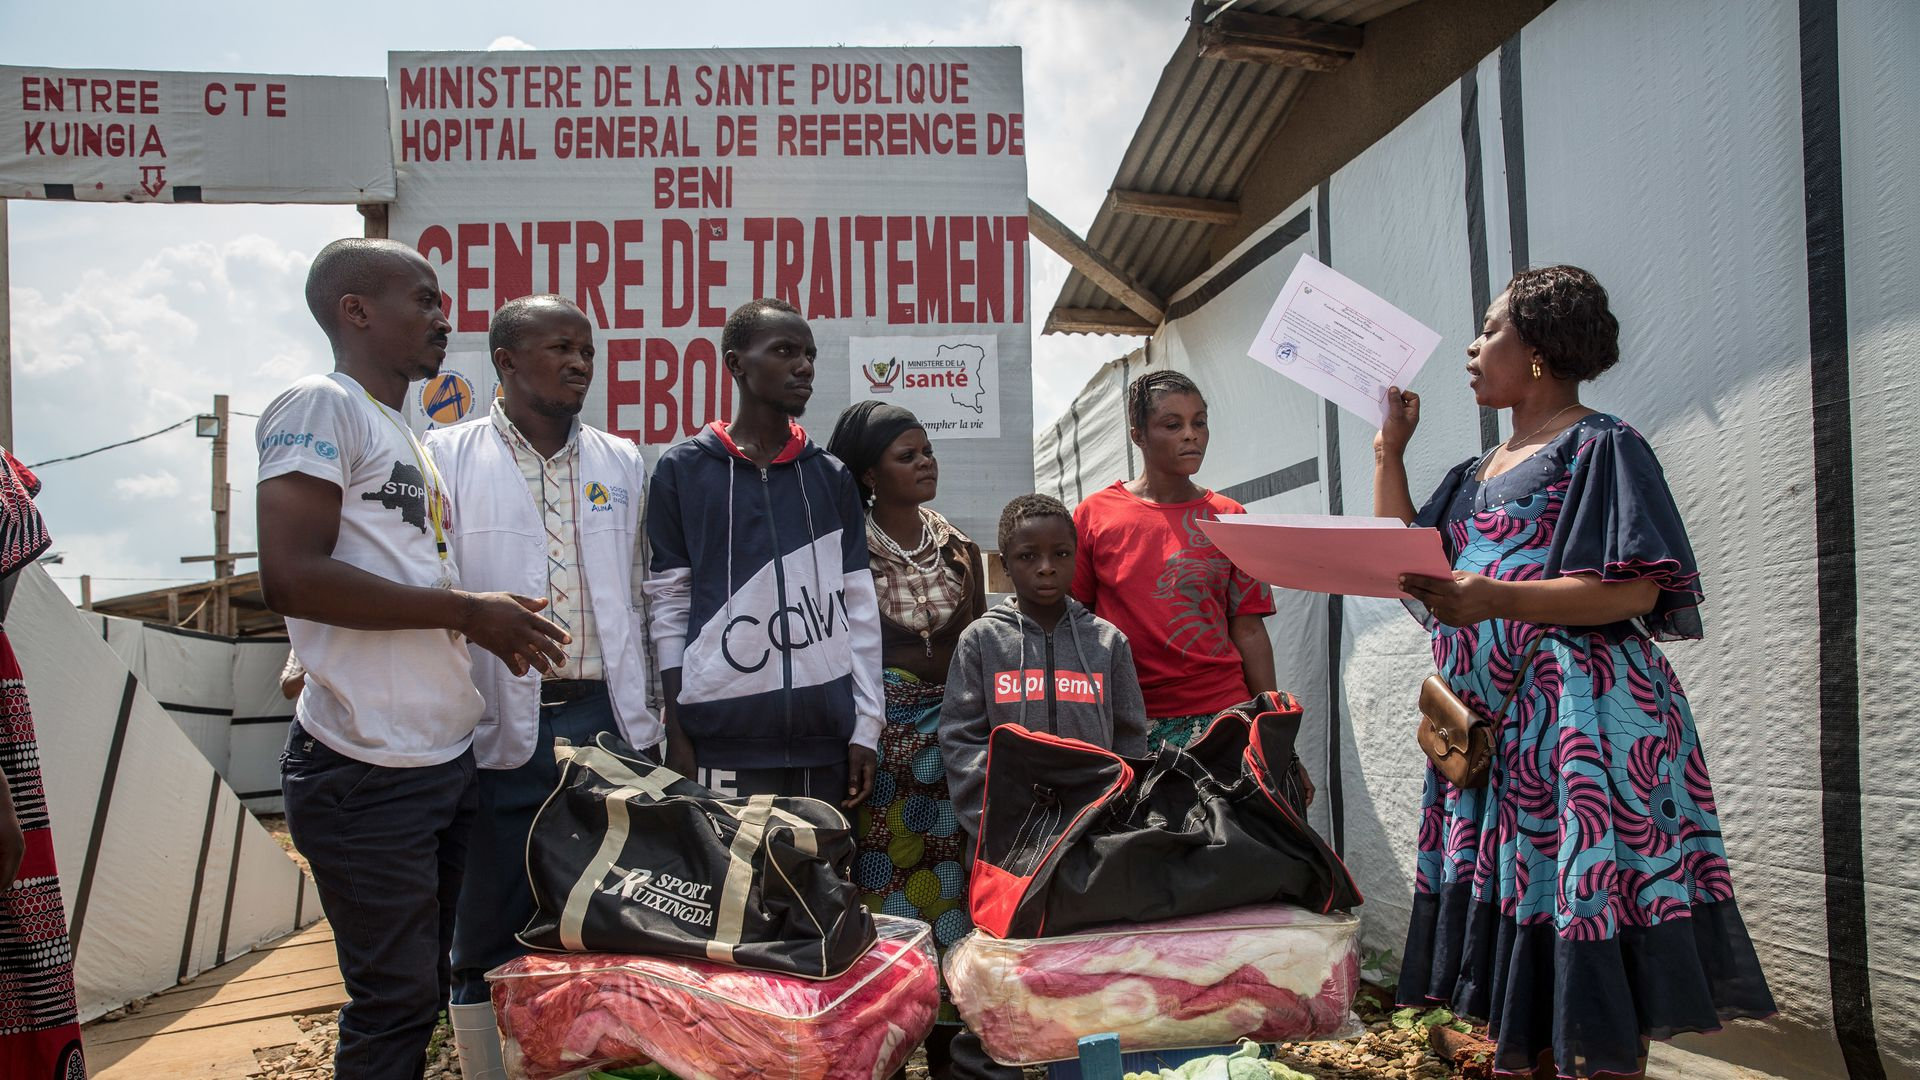 Photo of 8 year old getting certificate outside an Ebola Treatment Center in Congo declaring he is Ebola free